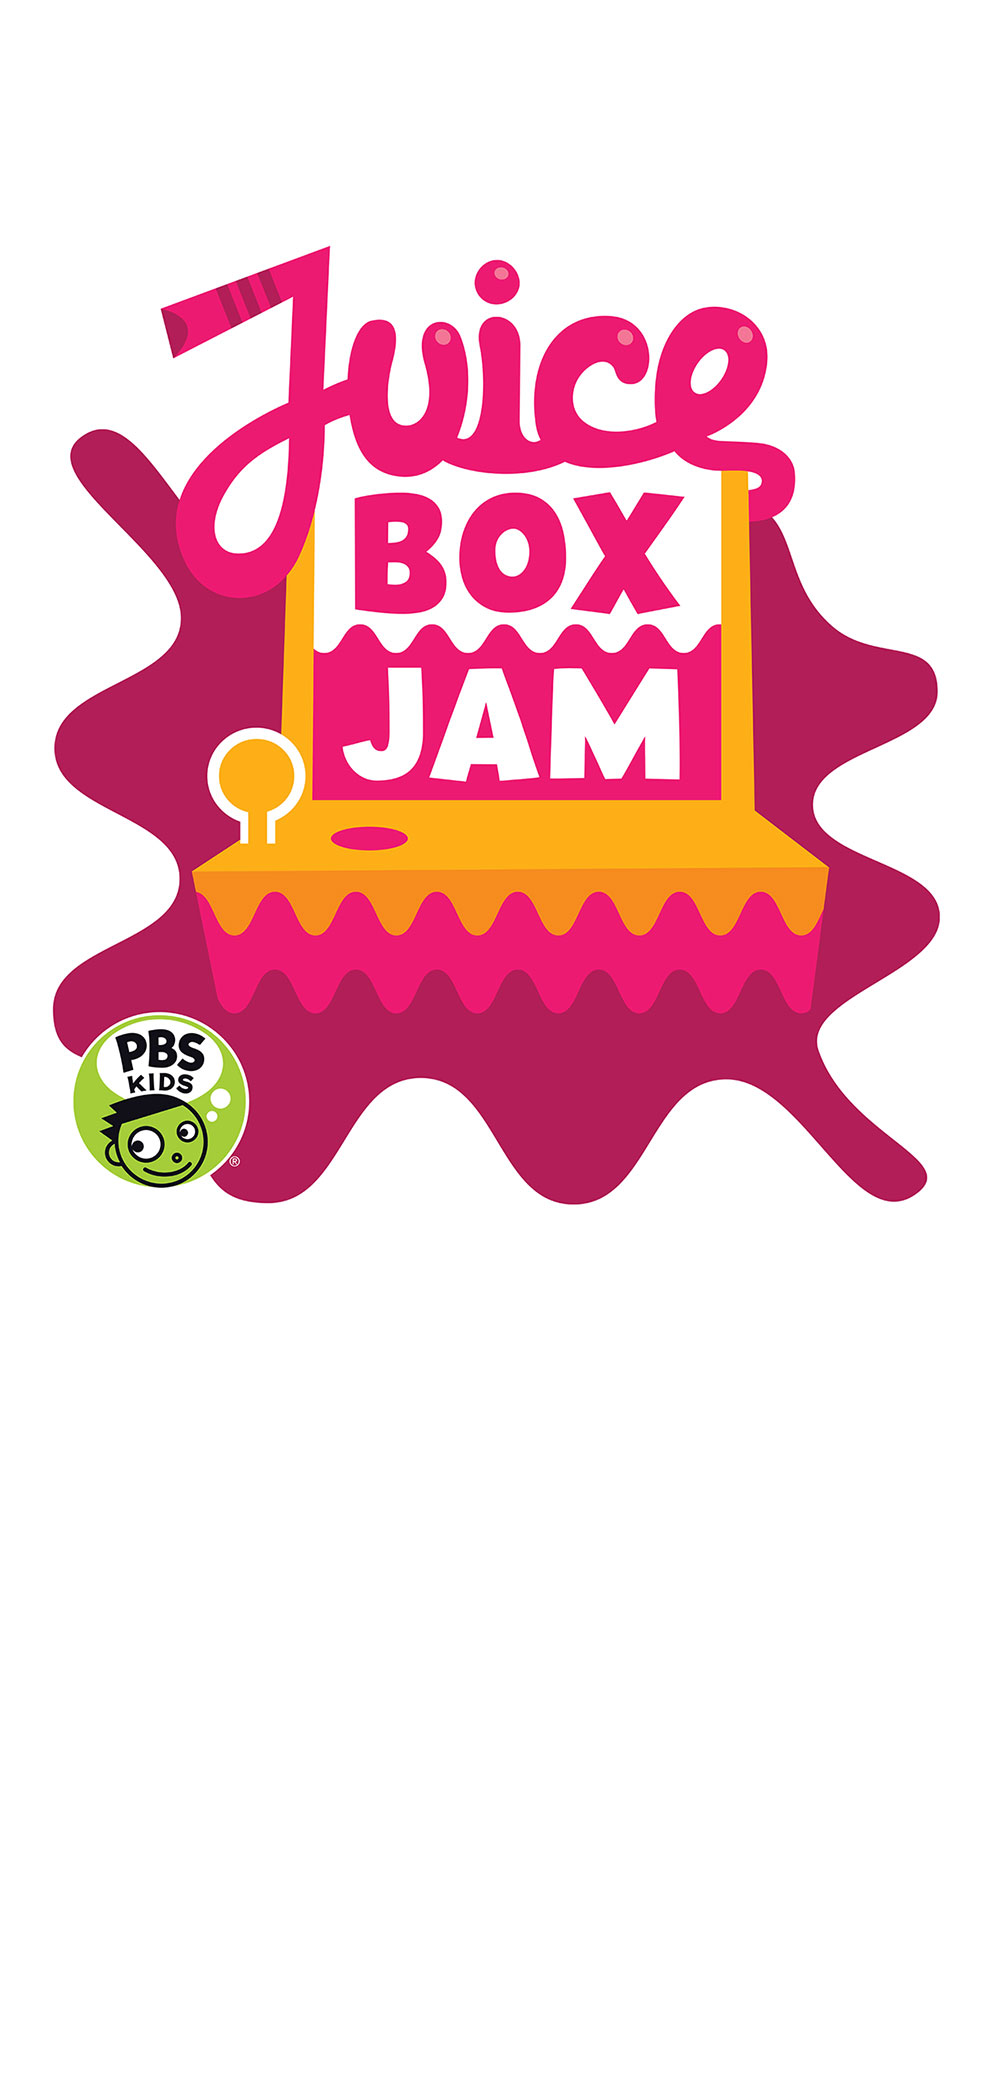 Juice box jam smaller logo